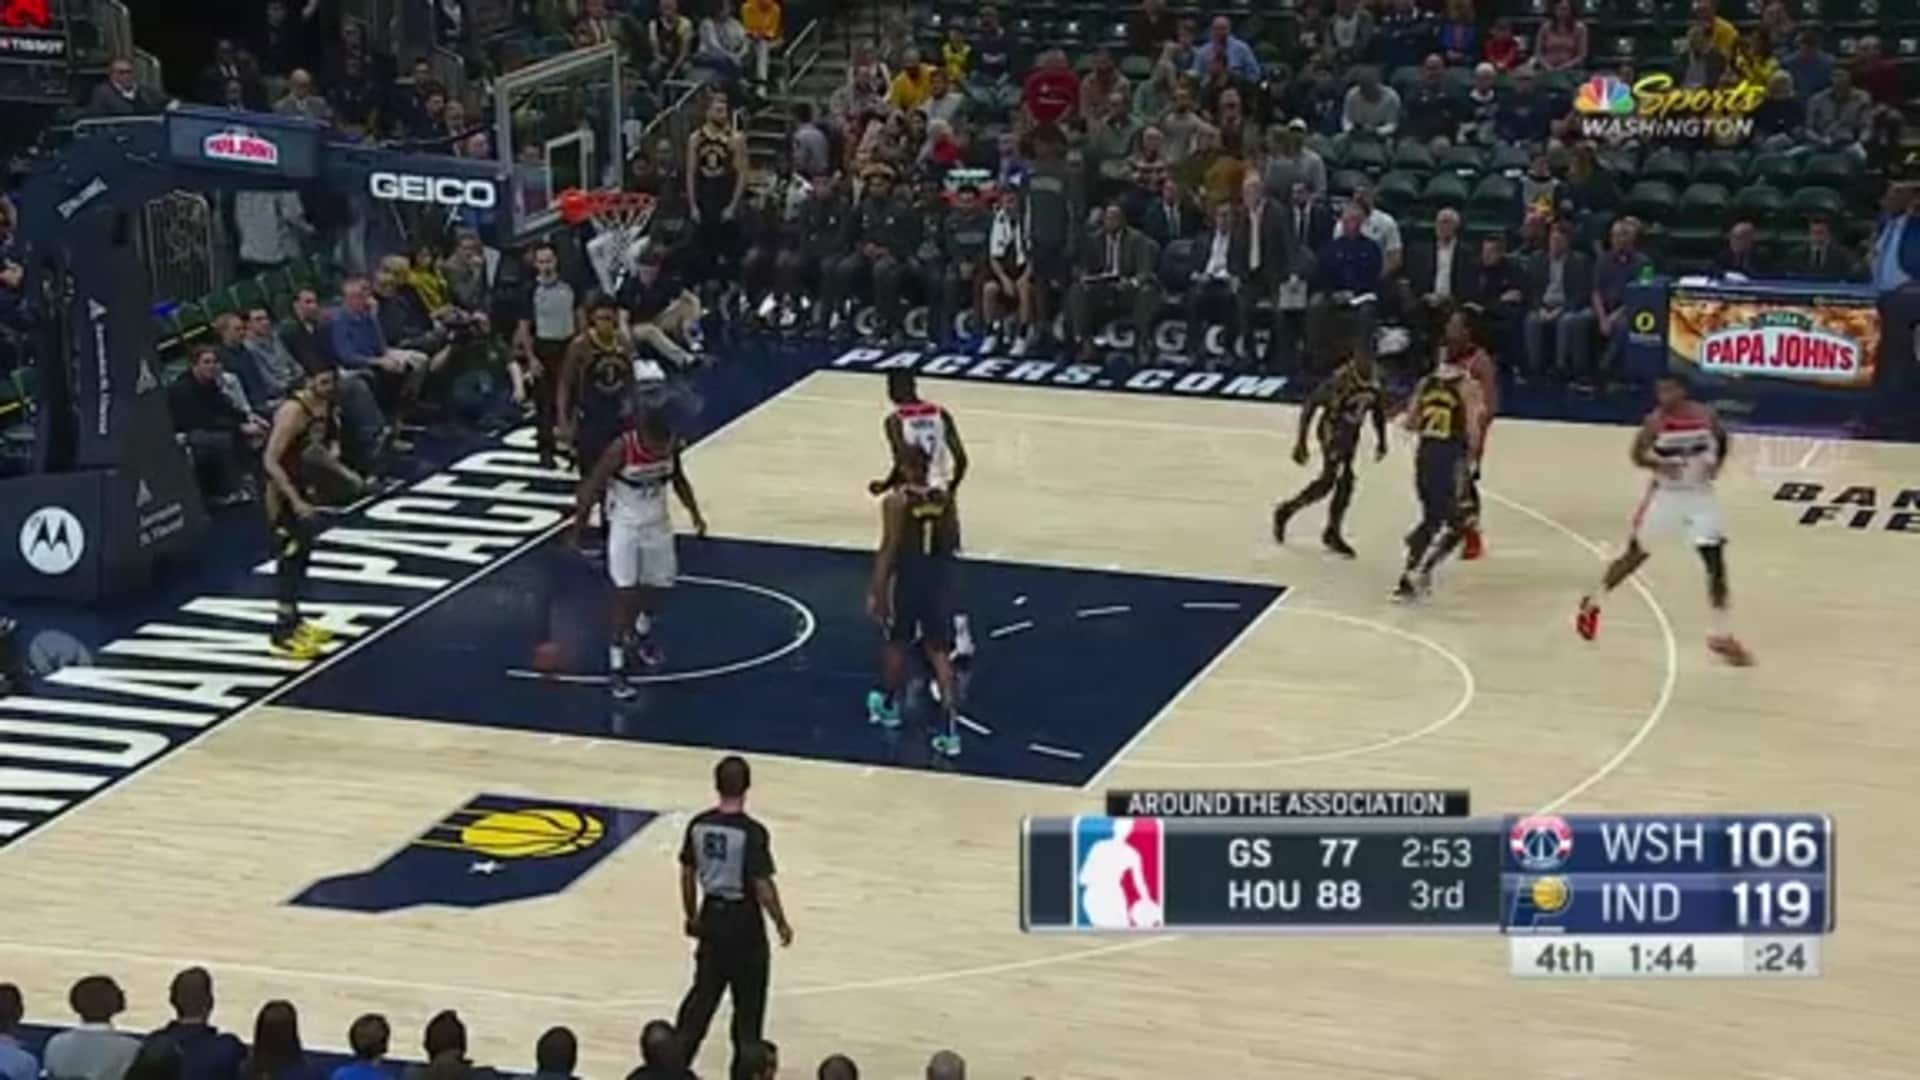 Highlights: Wizards vs. Pacers - 11/6/19